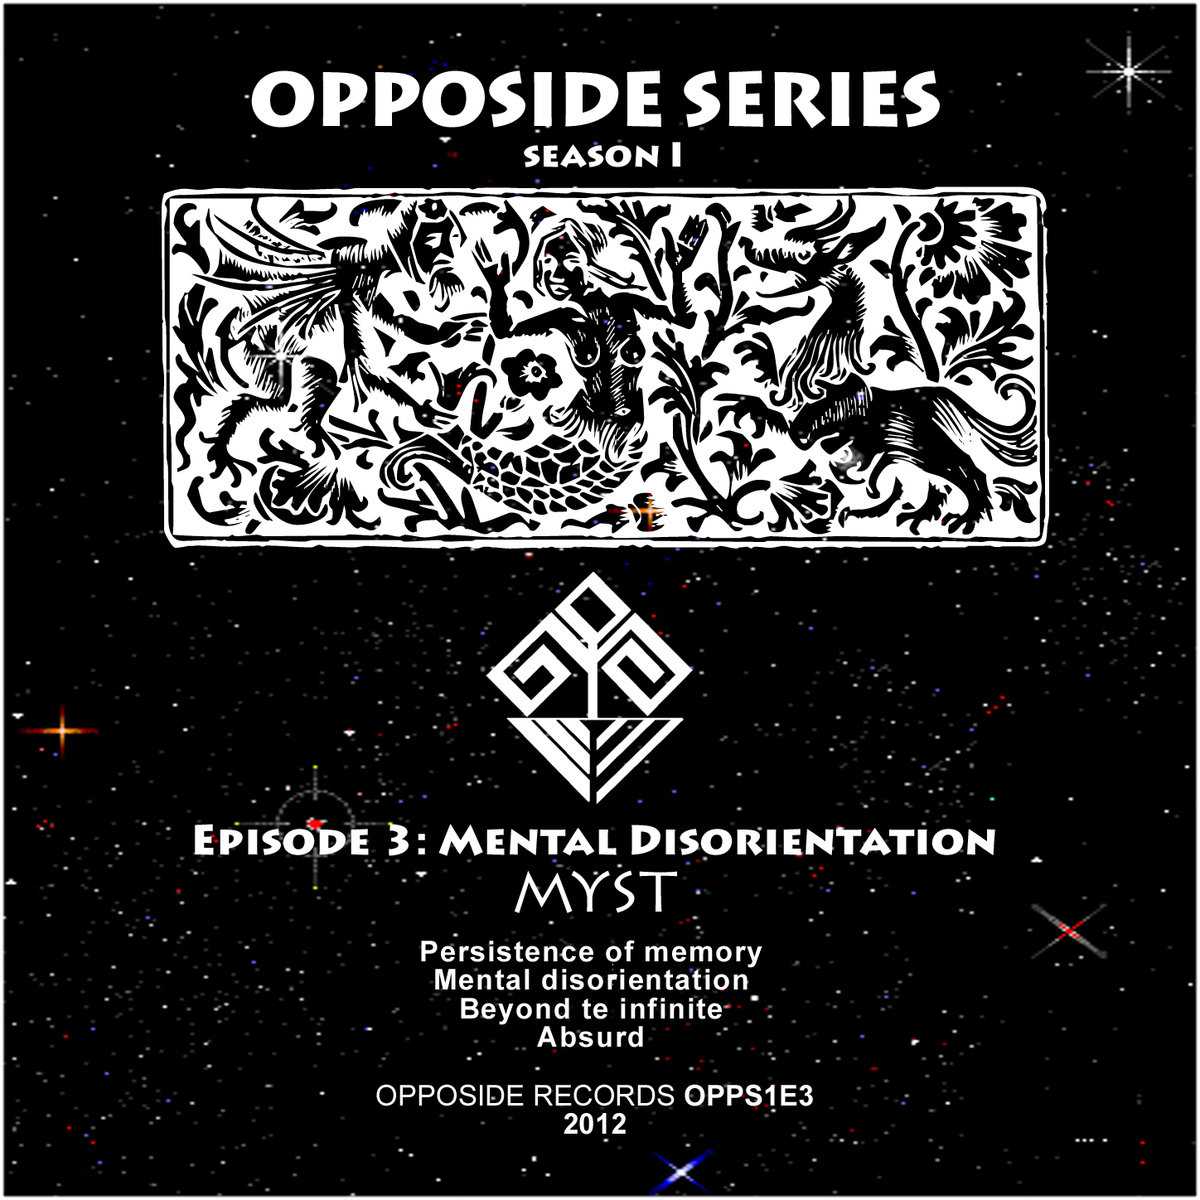 Myst - Beyond the Infinite @ 'Mental Disorientation' album (electronic, drum'n'bass)